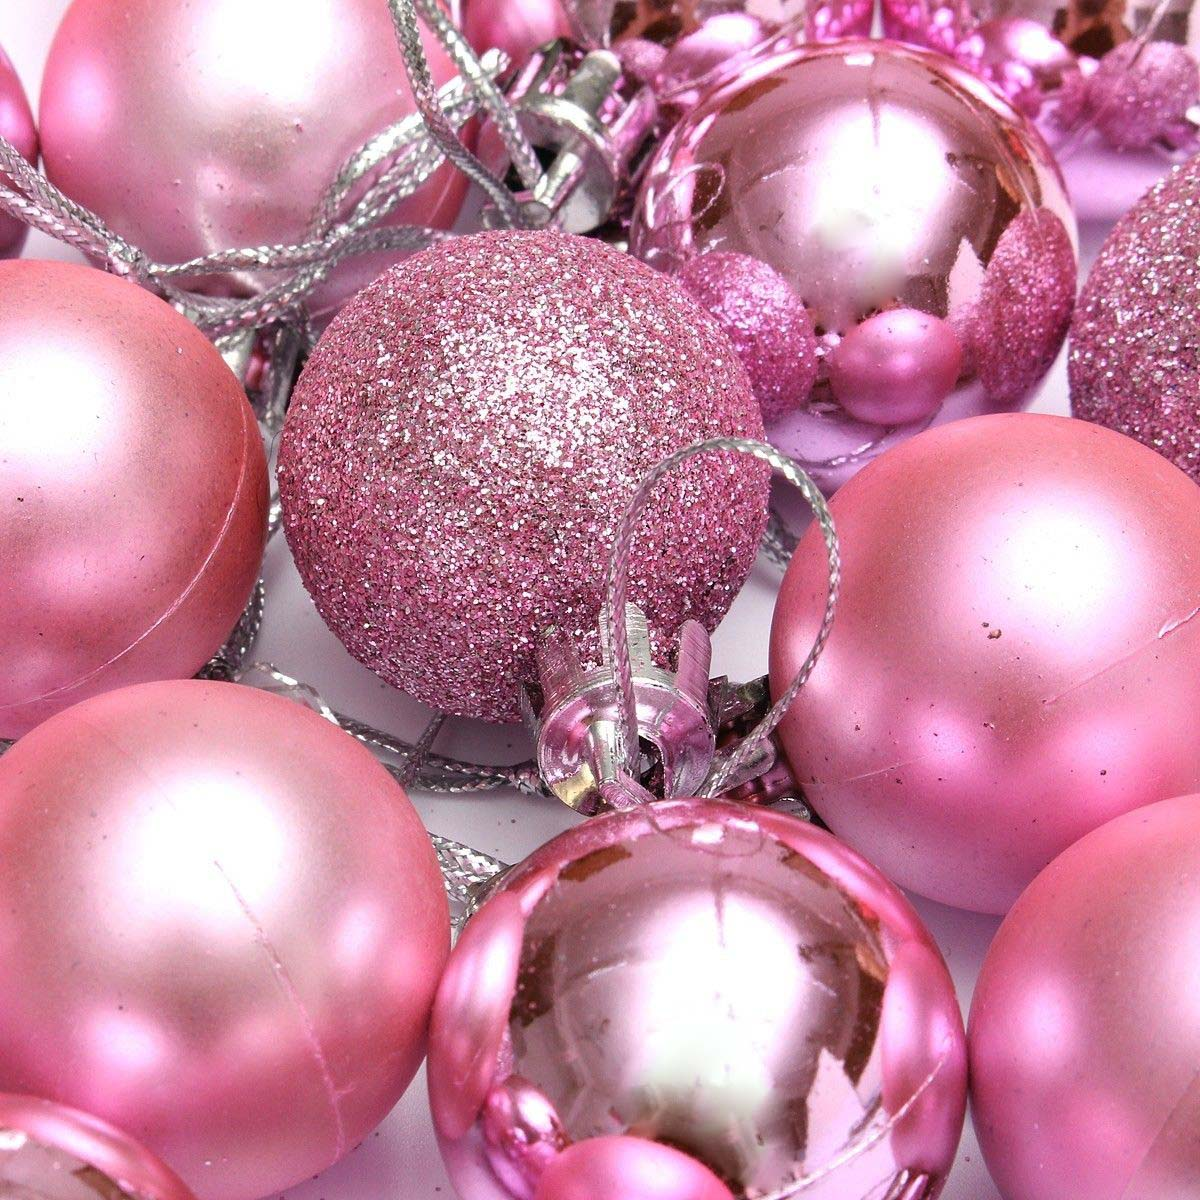 Image 3 - Hot 24Pcs Chic Christmas Baubles Tree Plain Glitter XMAS Ornament Ball Decoration Pink-in Party DIY Decorations from Home & Garden